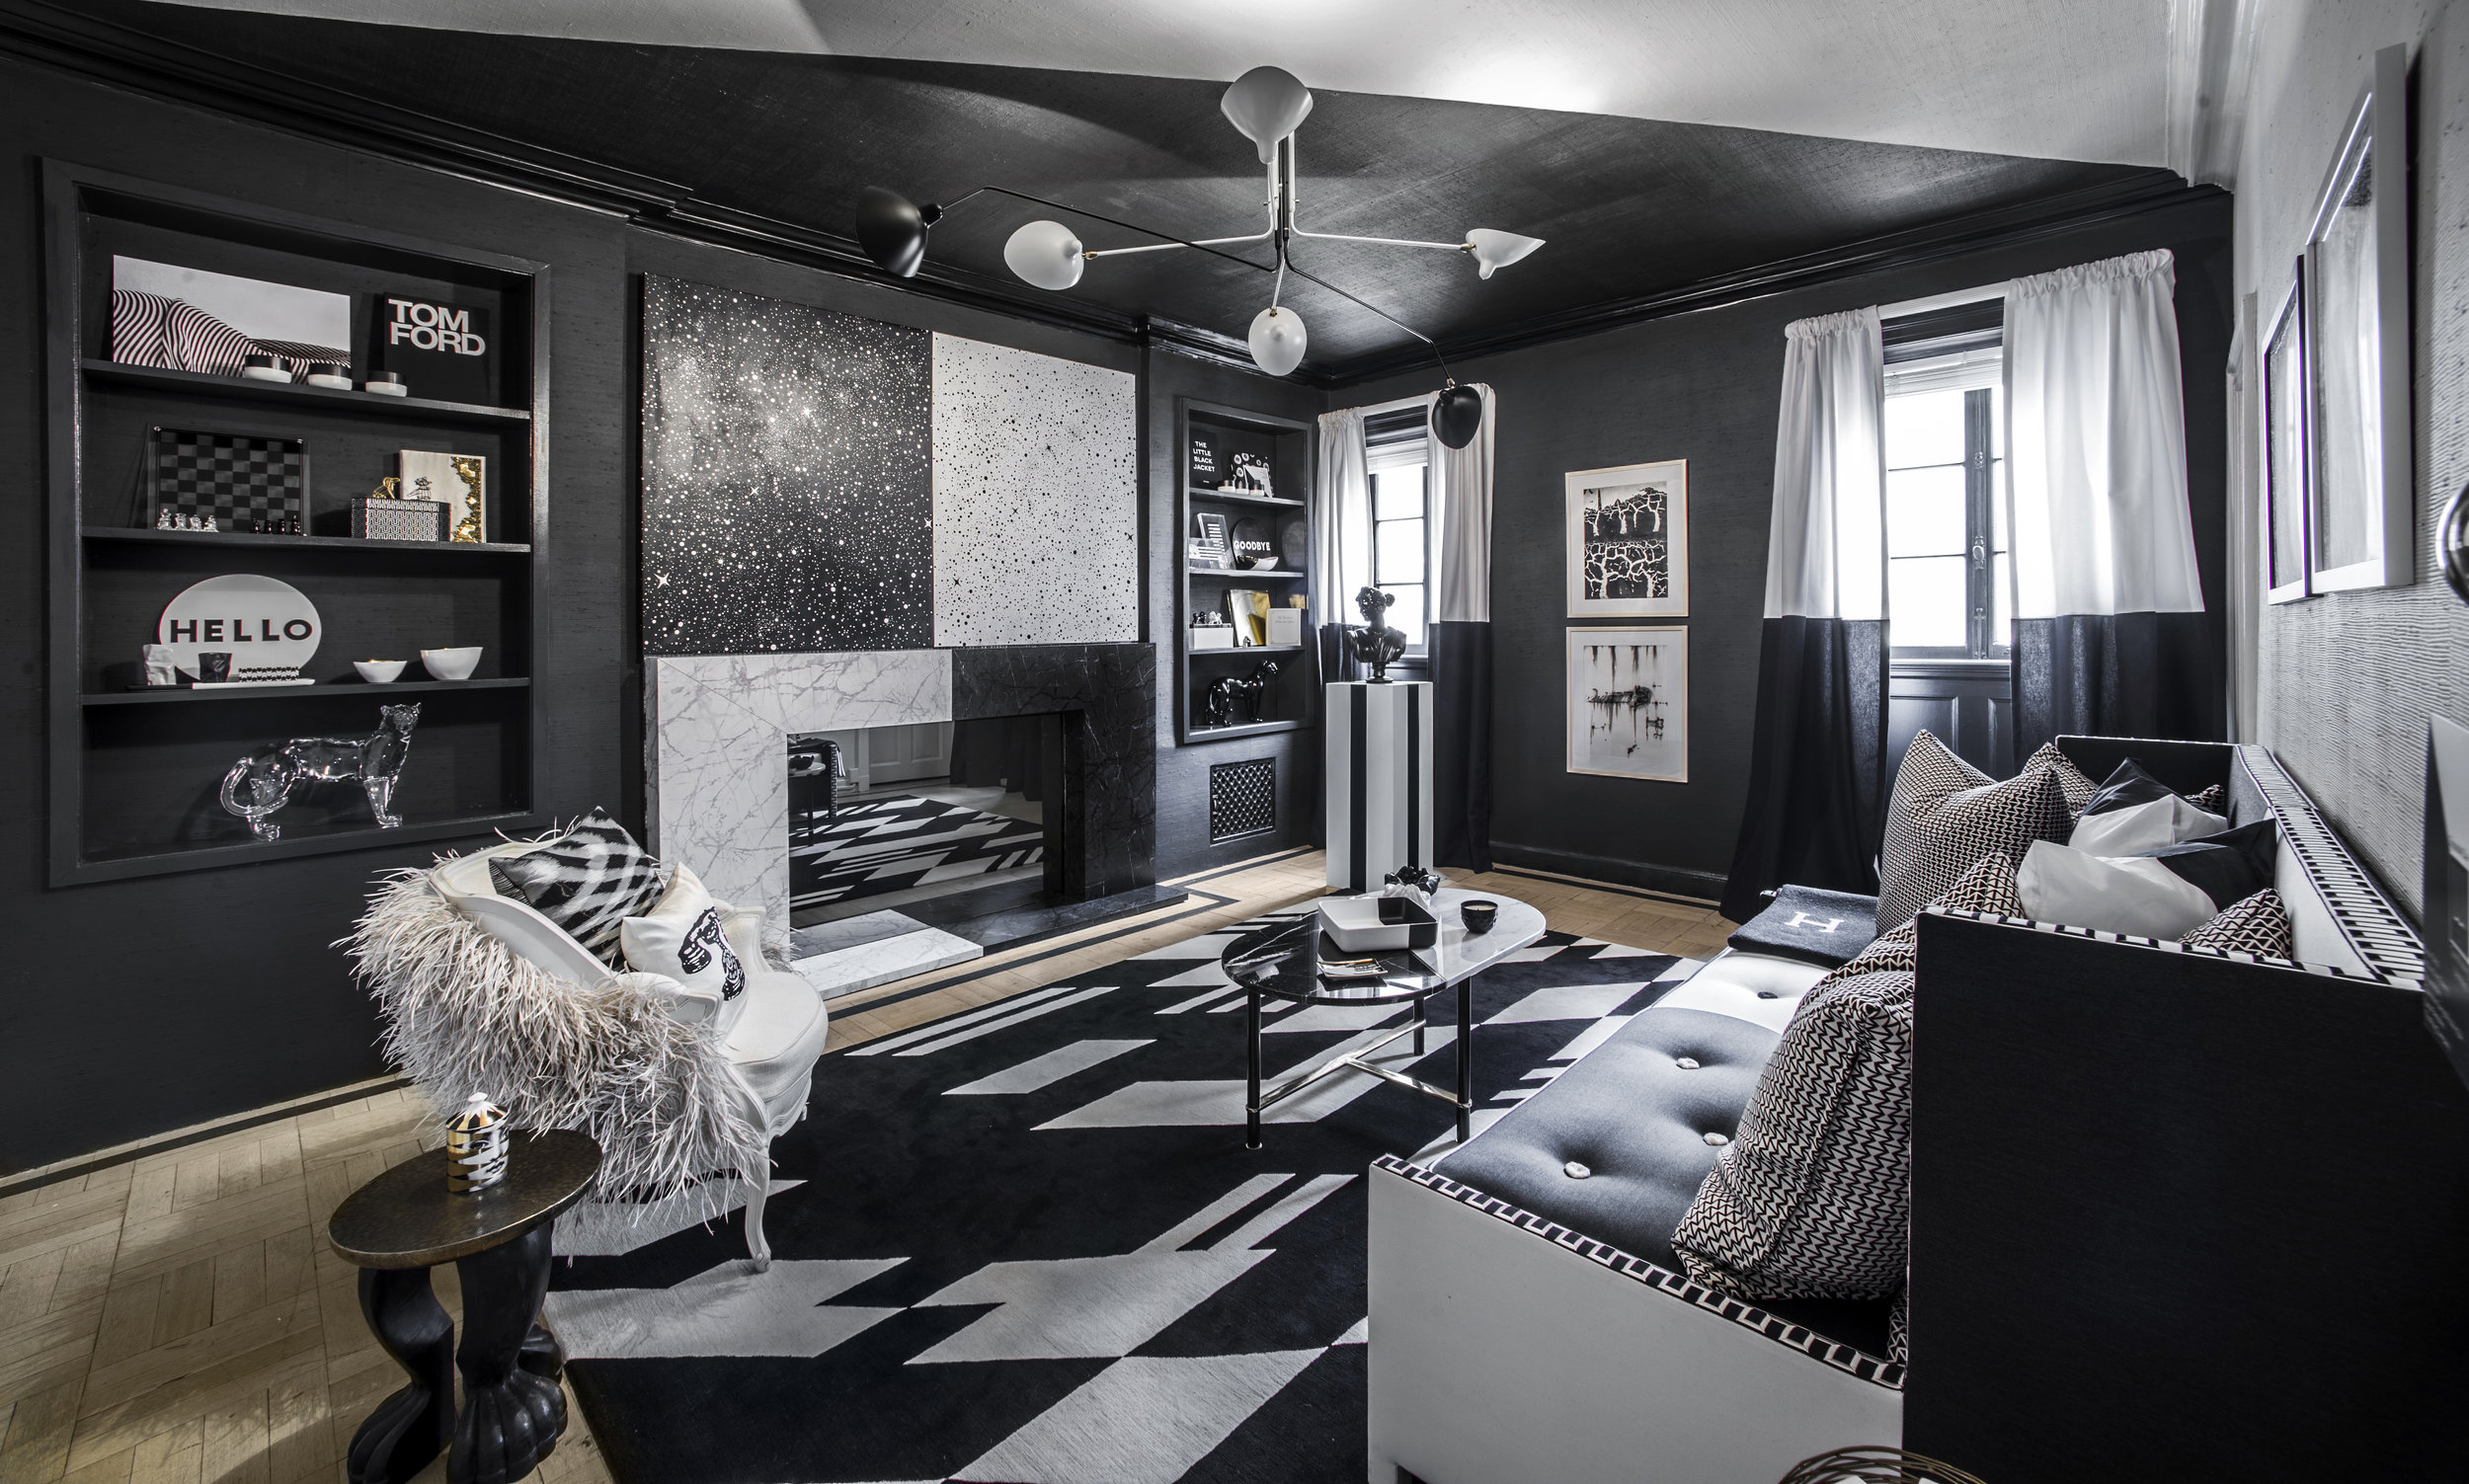 Black and White Room - photo by Andrew Werner.jpg